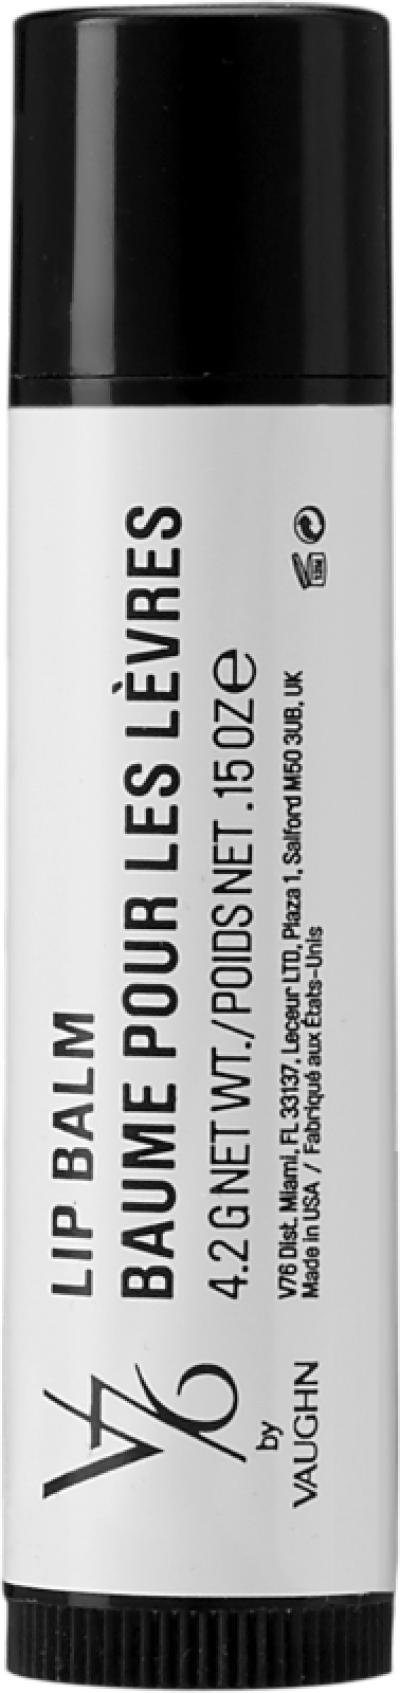 V76 by VAUGHN Lip Balm